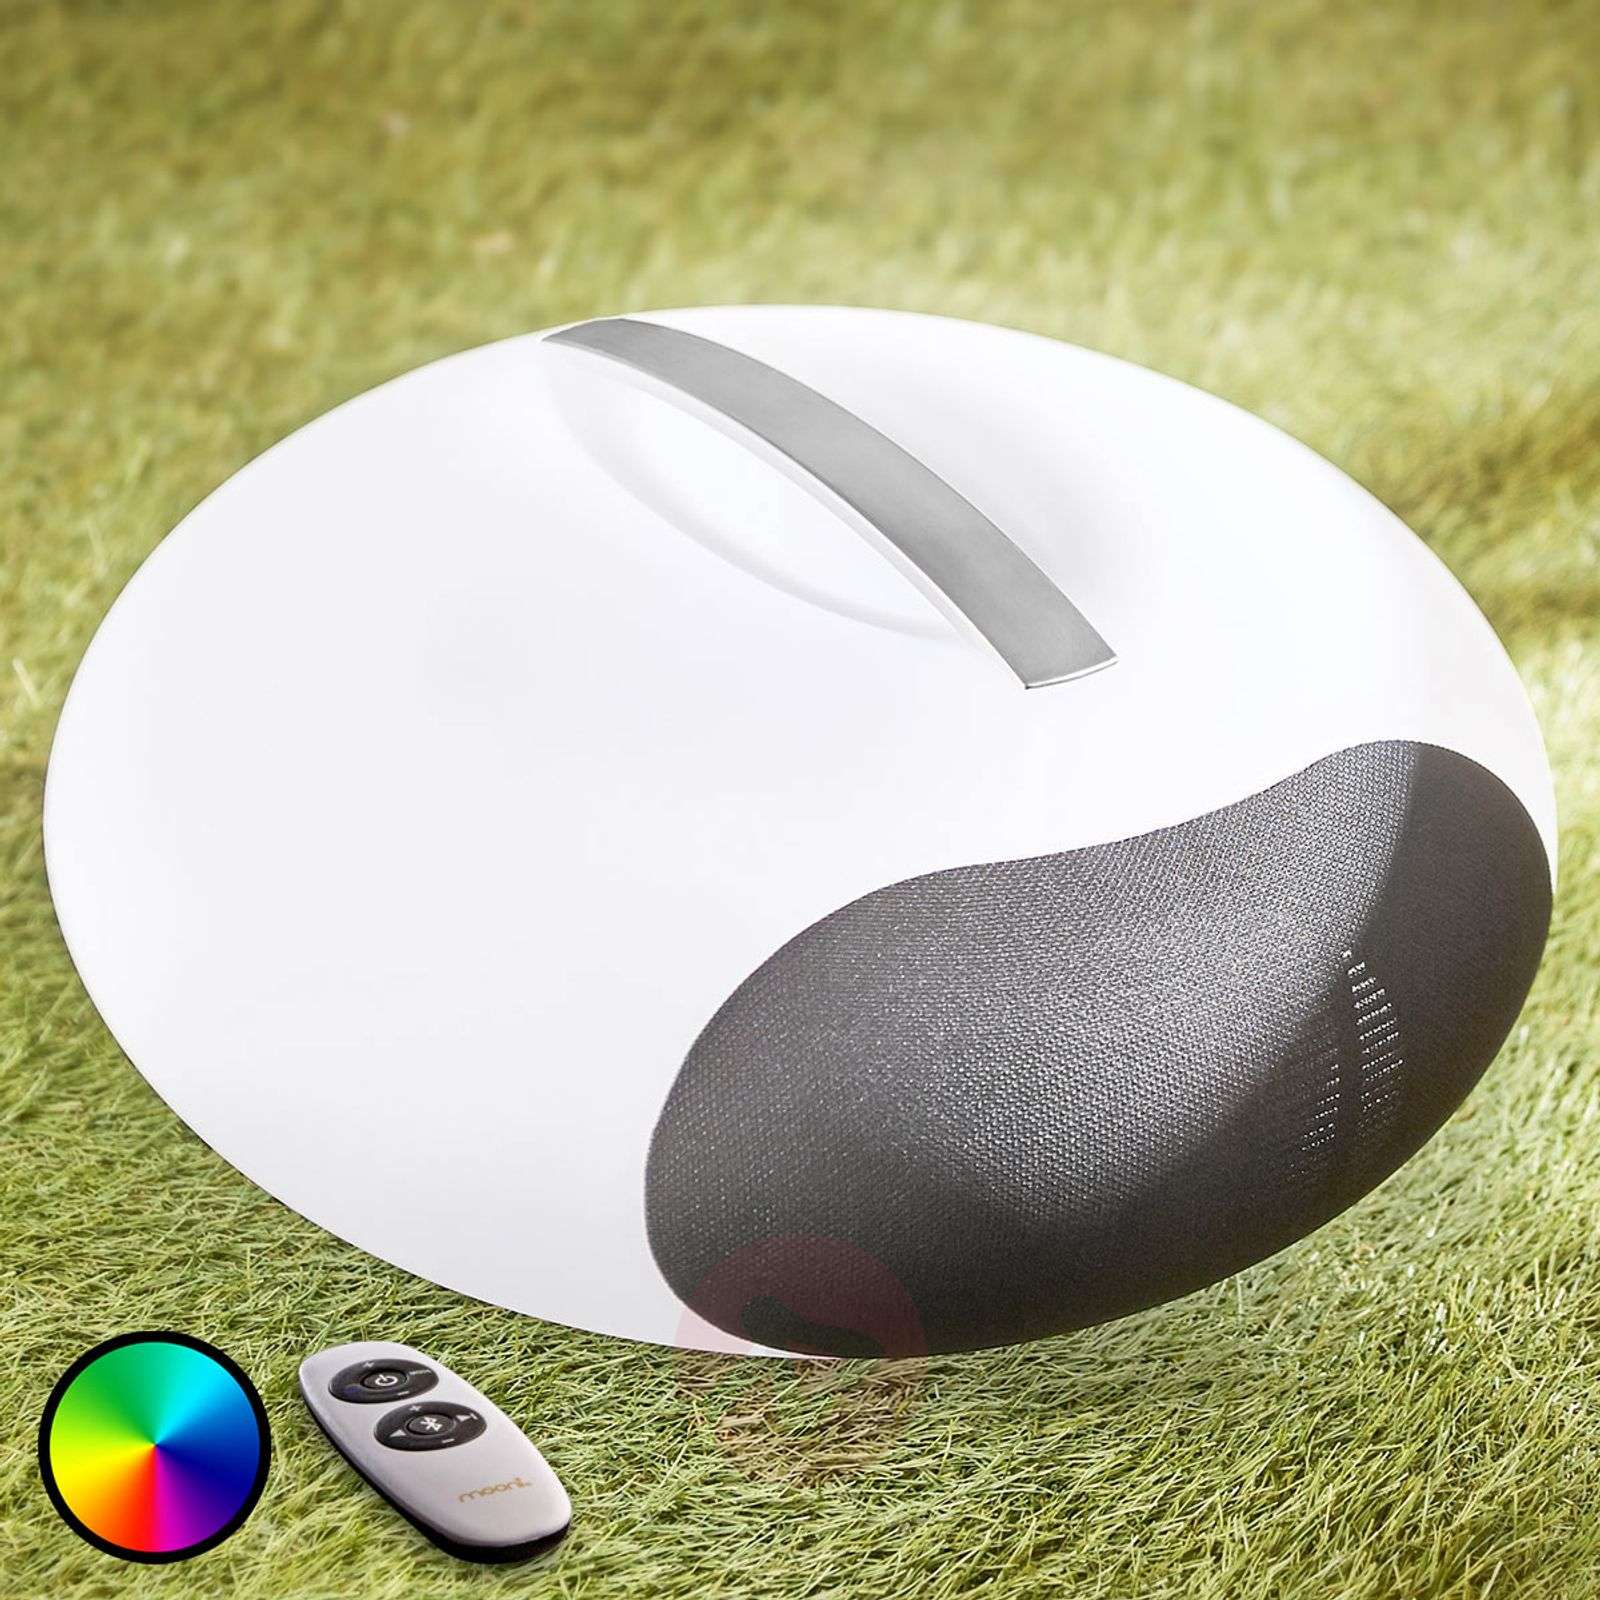 Jupita portable speaker with RGB LEDs-6729002-01